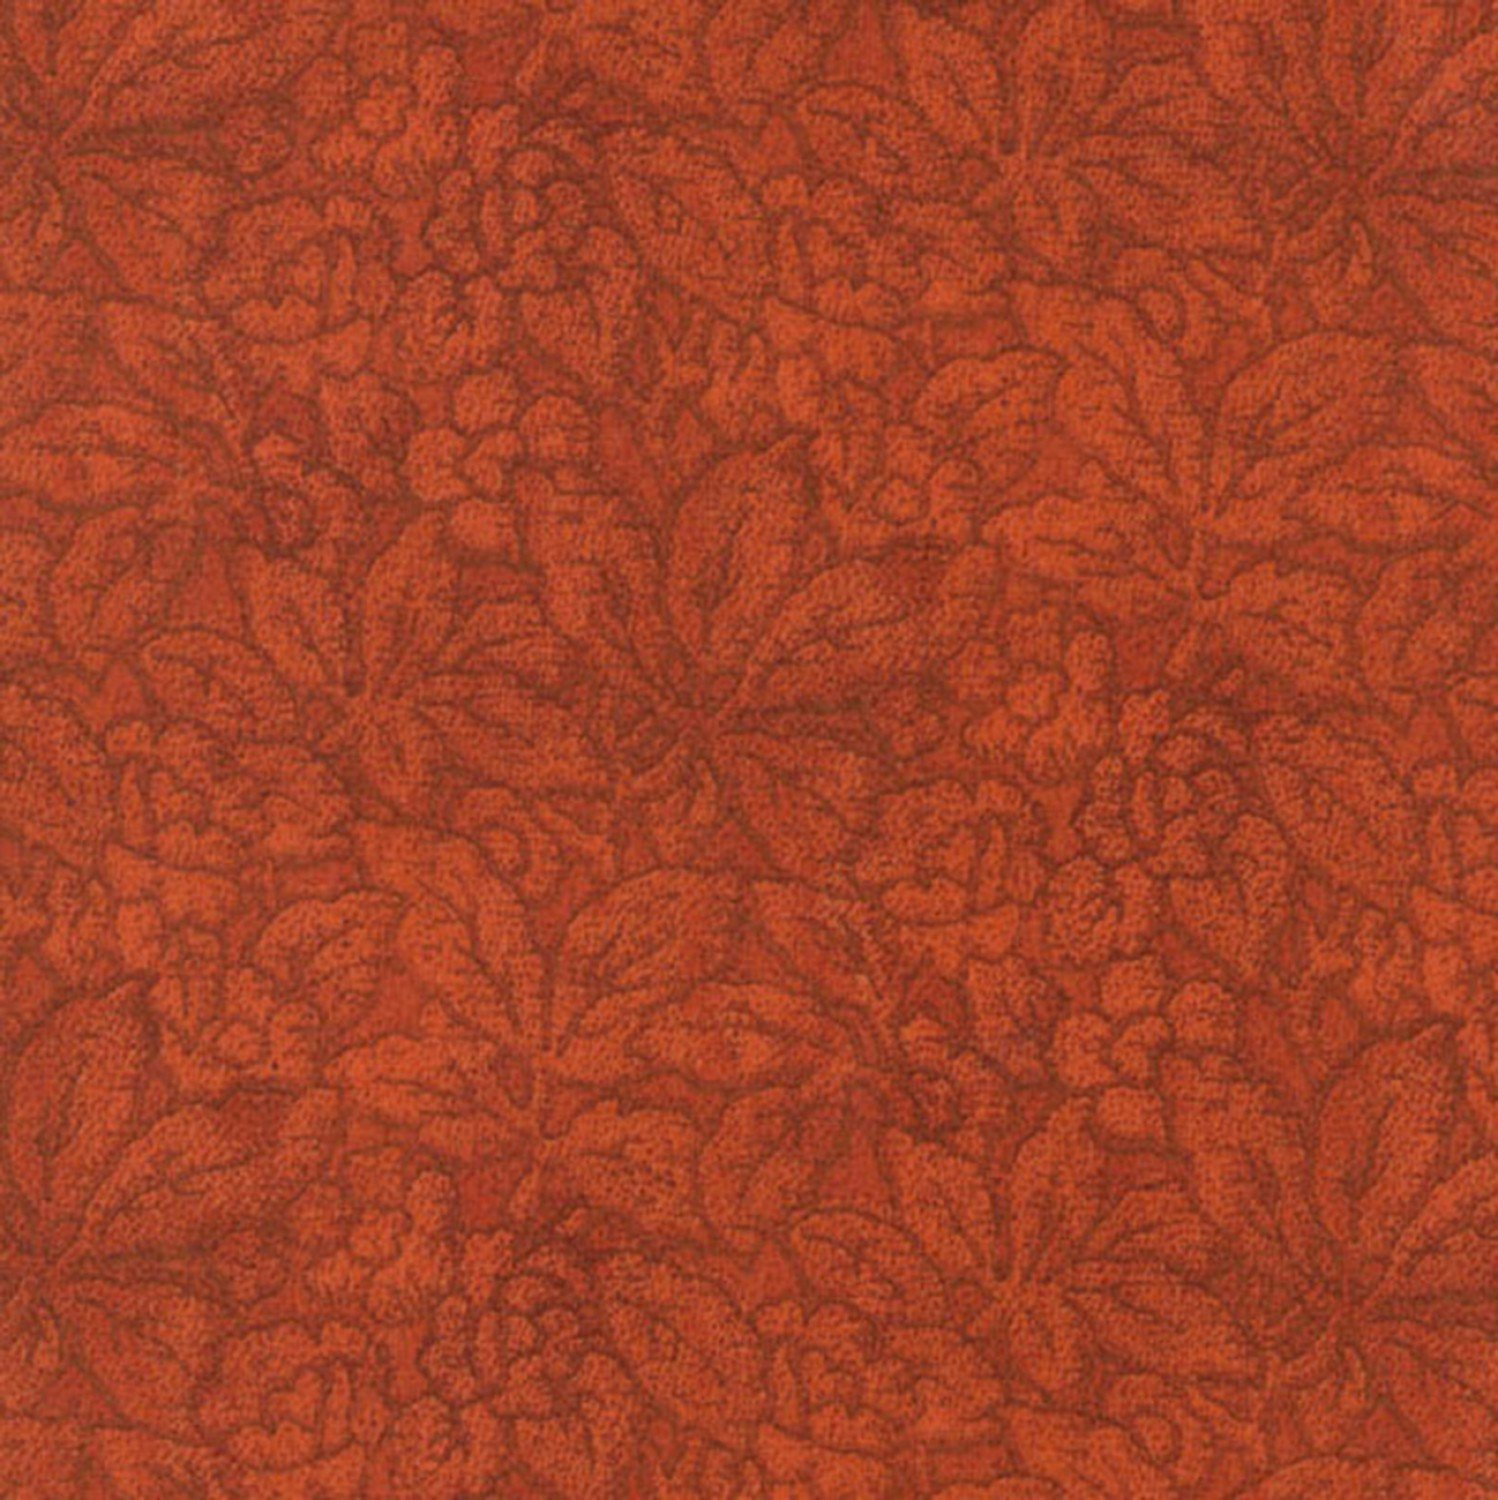 Orange Leaves Fall Fabric from Jinny Beyer Palette Collection